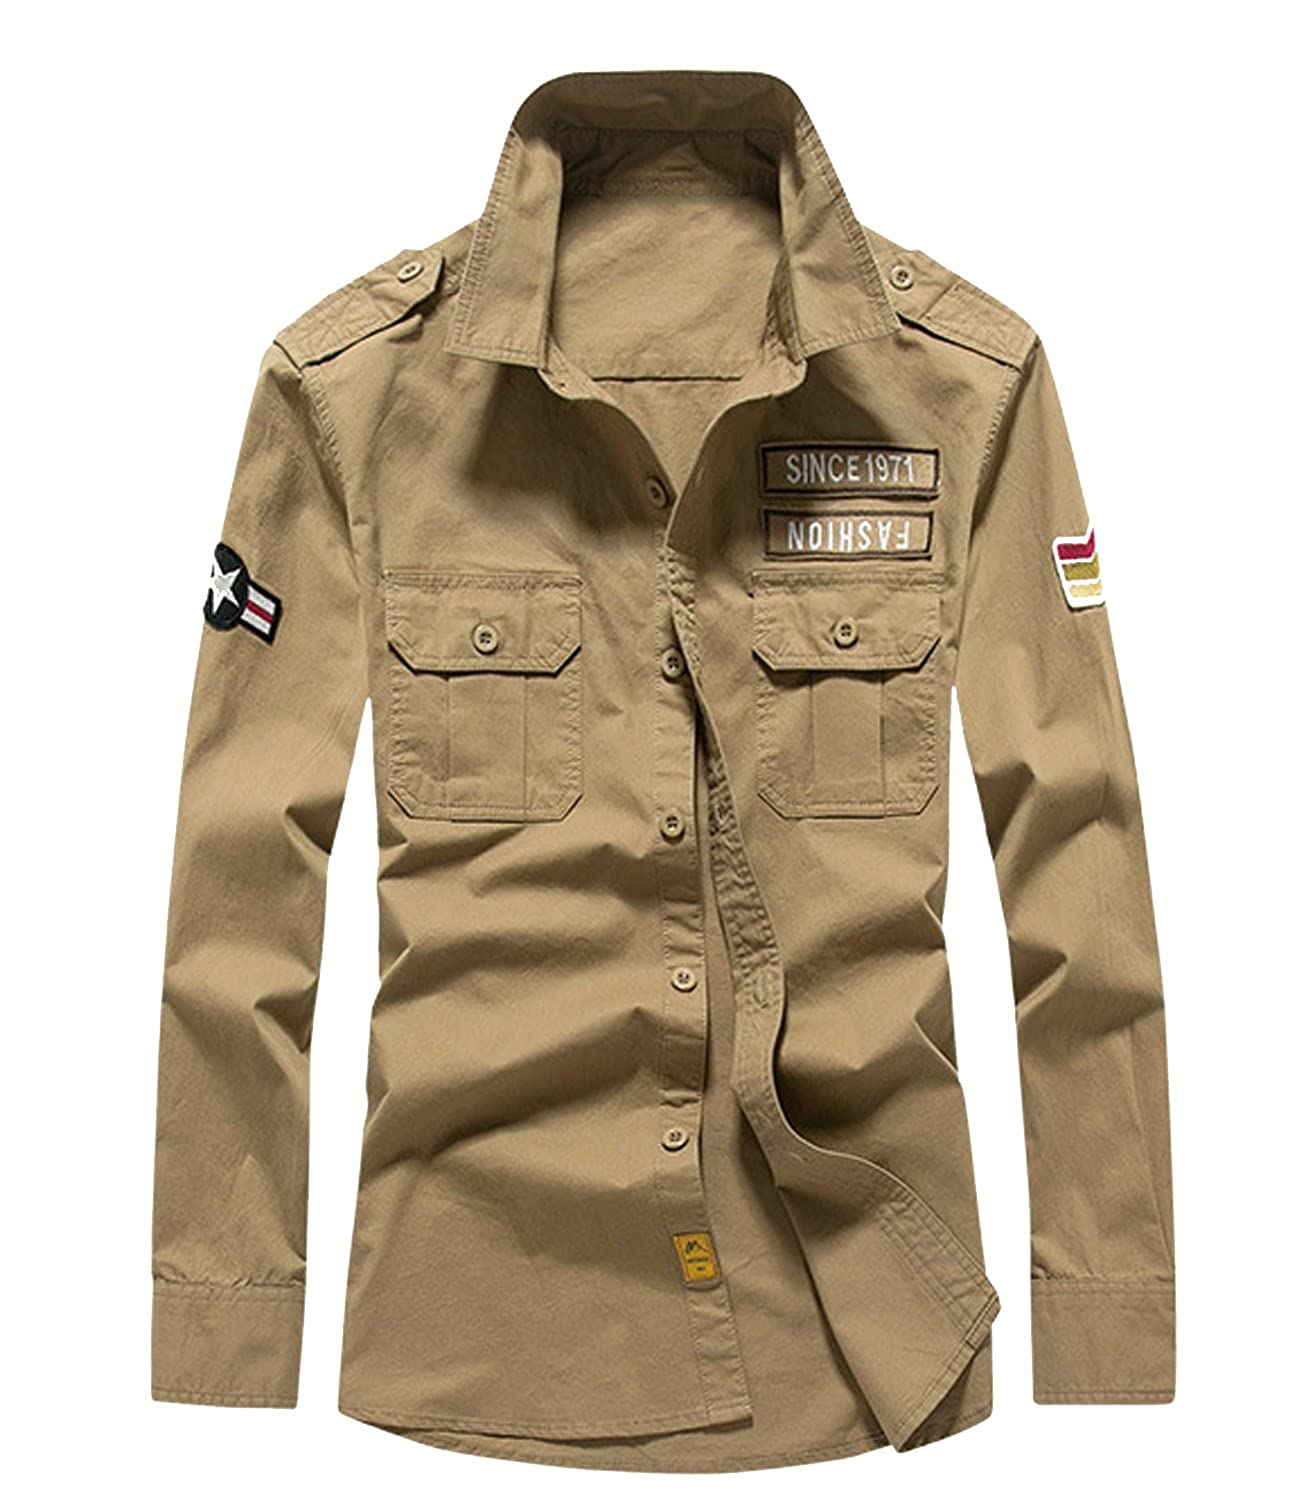 S/&S-Men Fashion Casual Military Style Long Sleeves Button Down Tactical Shirt